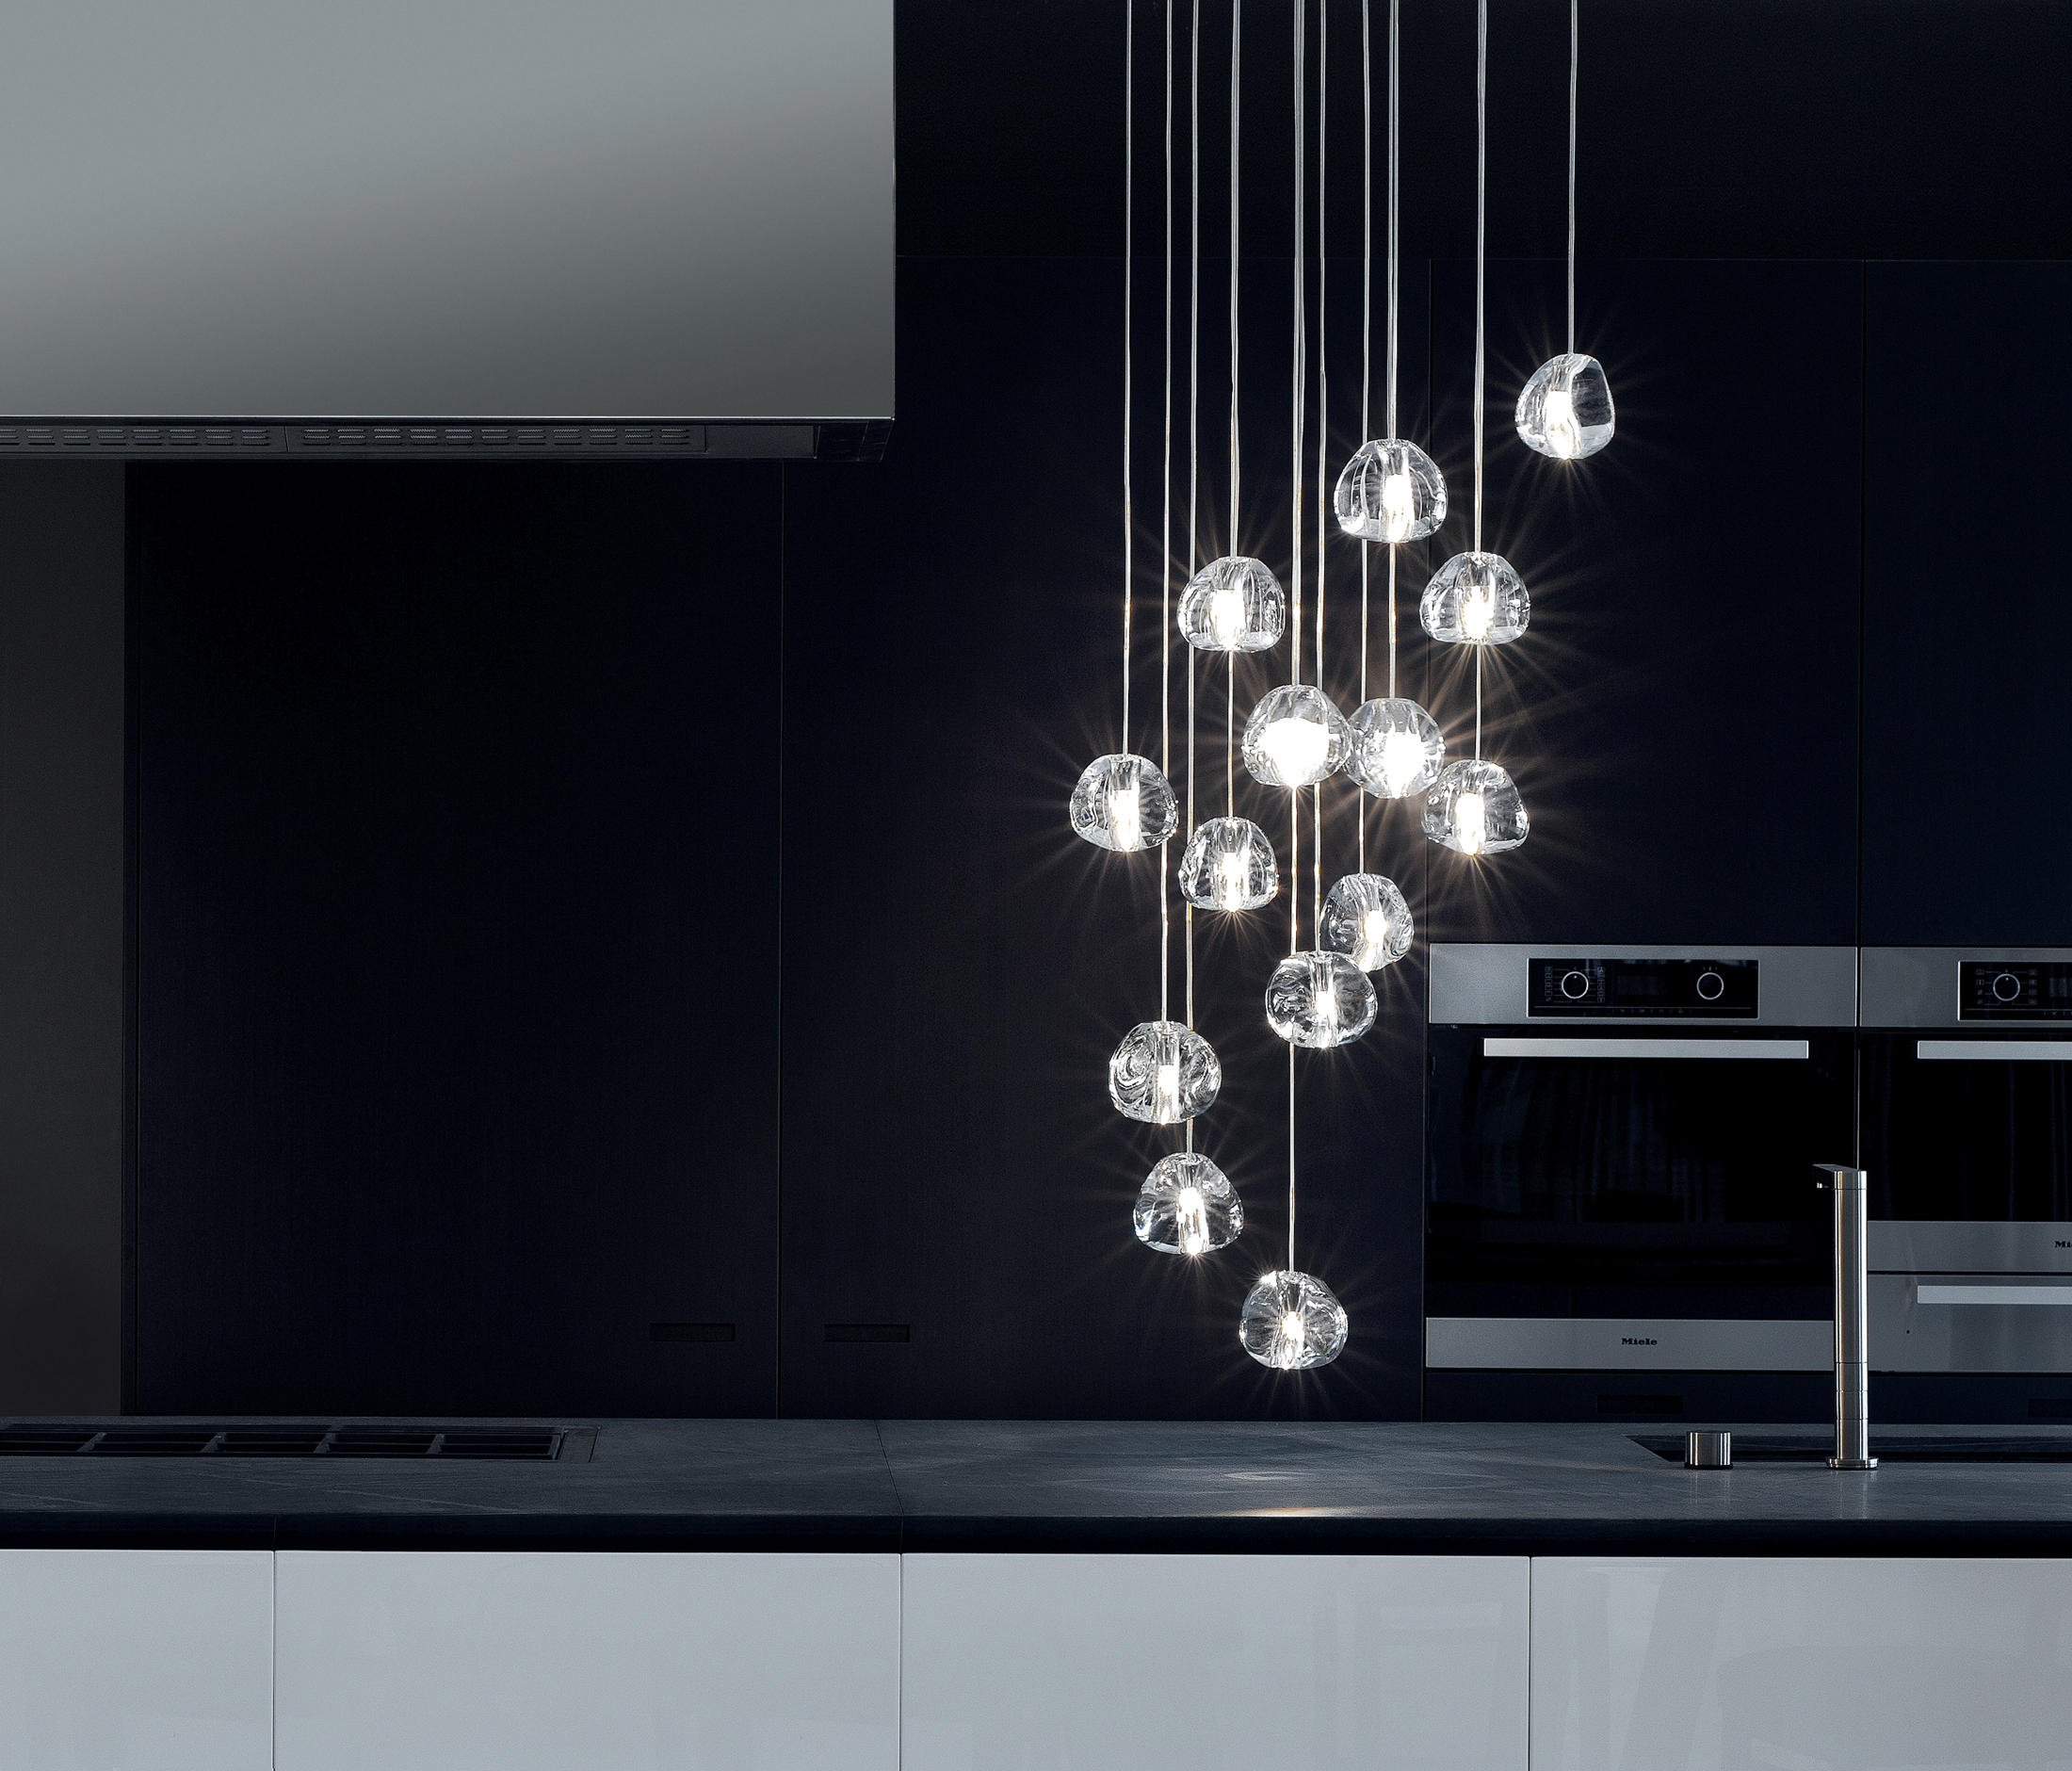 mizu suspended lights from terzani architonic. Black Bedroom Furniture Sets. Home Design Ideas